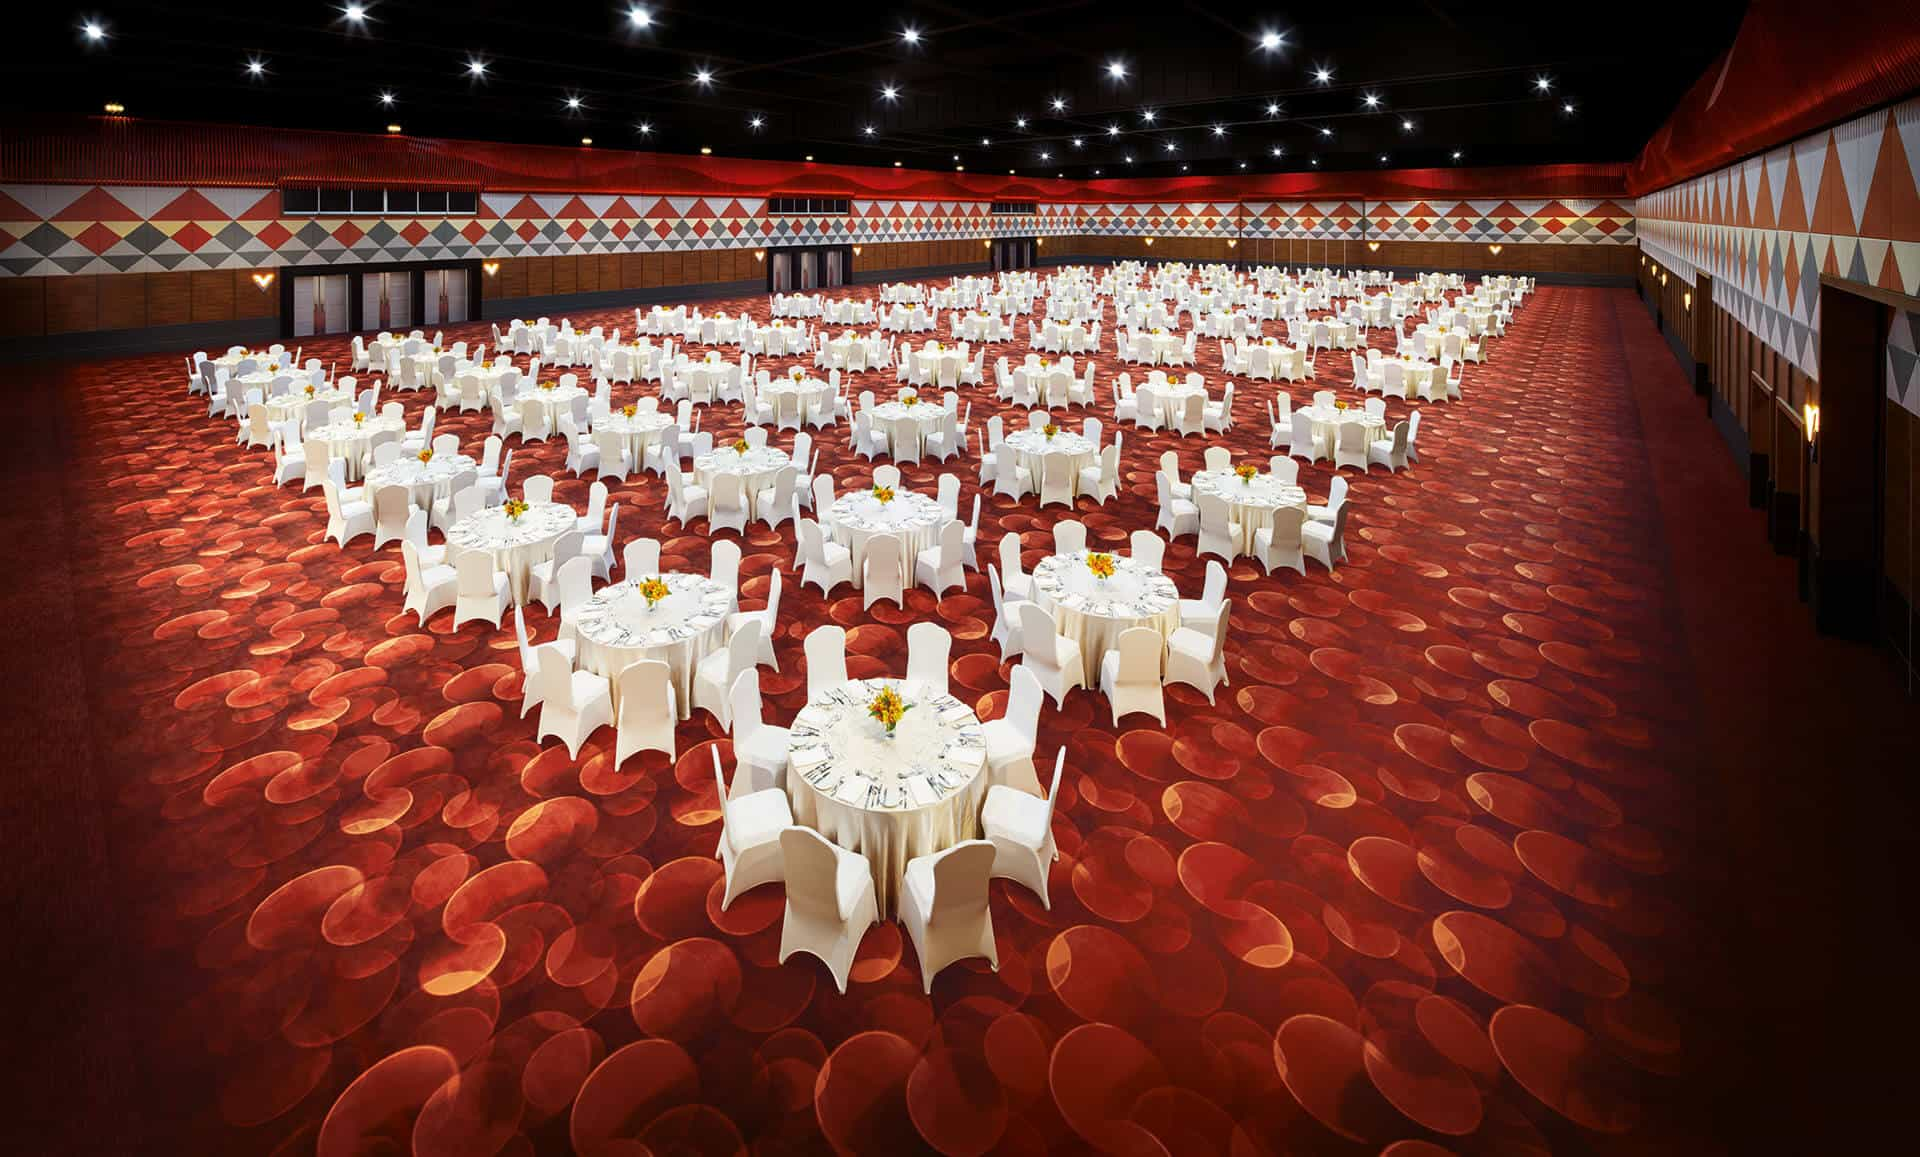 Sunway Pyramid Convention Centre Photo 1